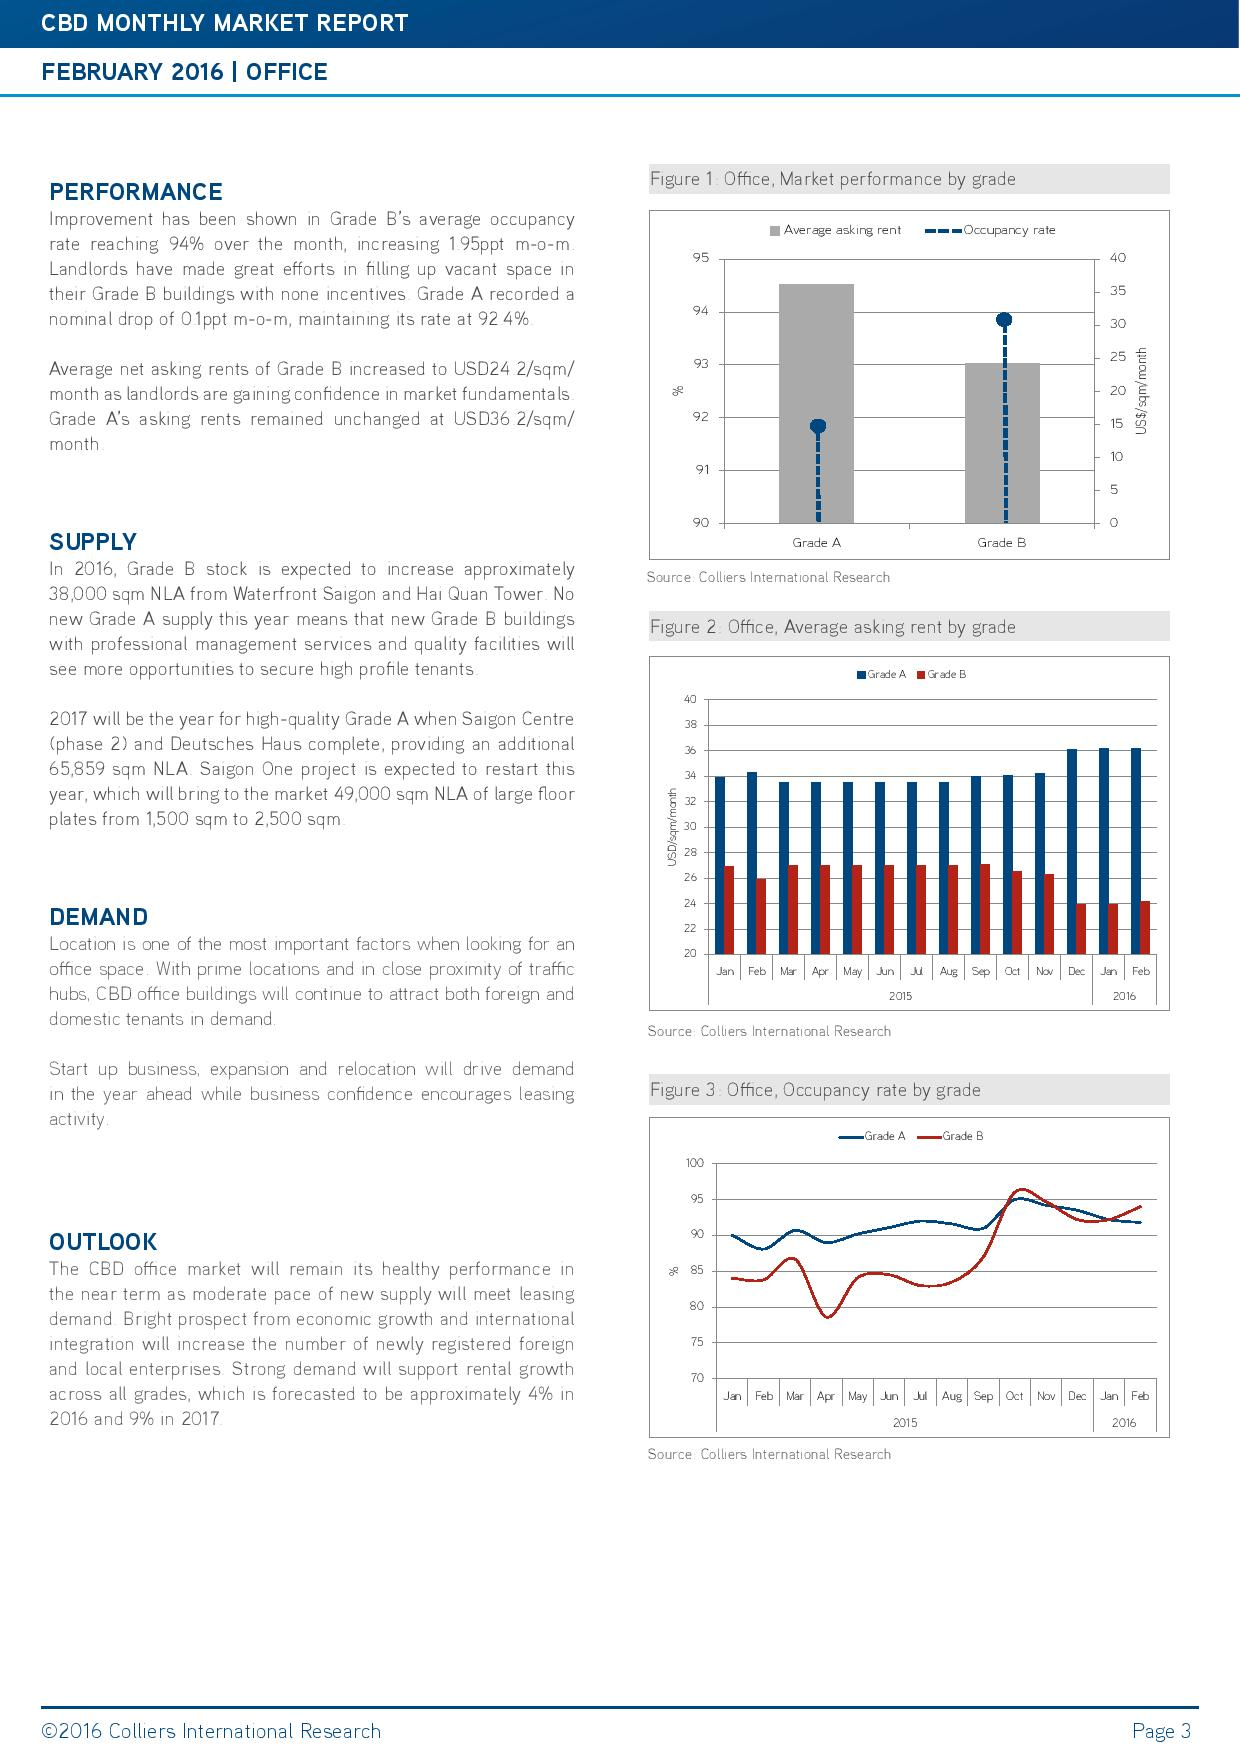 Colliers_HCMC_CBD report_Feb 2016_ENG-page-003